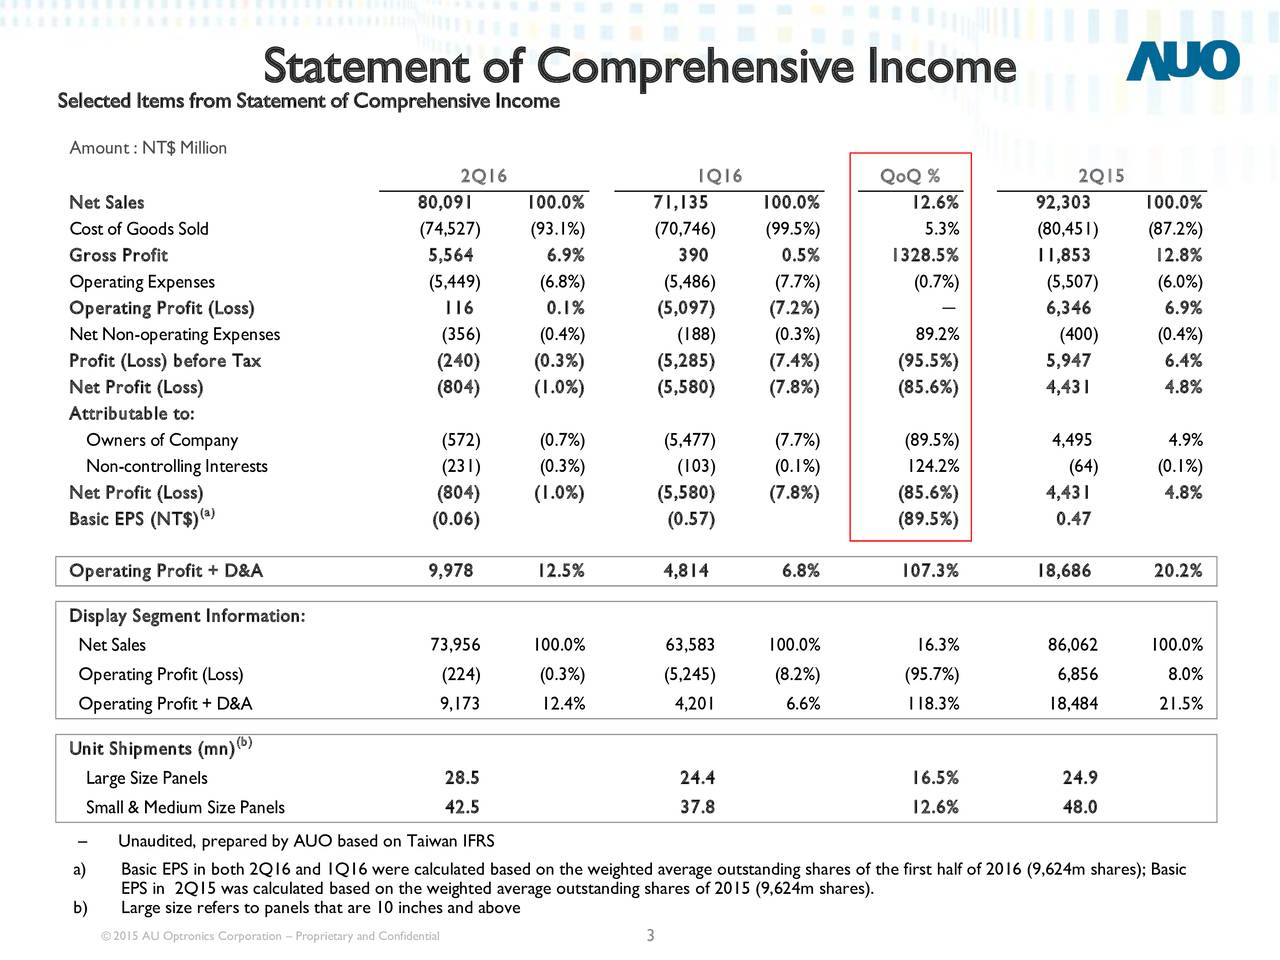 Selected Items from Statement of Comprehensive Income Amount : NT$ Million 2Q16 1Q16 QoQ % 2Q15 Net Sales 80,091 100.0% 71,135 100.0% 12.6% 92,303 100.0% Cost of Goods Sold (74,527) (93.1%) (70,746) (99.5%) 5.3% (80,451) (87.2%) Gross Profit 5,564 6.9% 390 0.5% 1328.5% 11,853 12.8% Operating Expenses (5,449) (6.8%) (5,486) (7.7%) (0.7%) (5,507) (6.0%) Operating Profit (Loss) 116 0.1% (5,097) (7.2%)  6,346 6.9% Net Non-operating Expenses (356) (0.4%) (188) (0.3%) 89.2% (400) (0.4%) Profit (Loss) before Tax (240) (0.3%) (5,285) (7.4%) (95.5%) 5,947 6.4% Net Profit (Loss) (804) (1.0%) (5,580) (7.8%) (85.6%) 4,431 4.8% Attributable to: Owners of Company (572) (0.7%) (5,477) (7.7%) (89.5%) 4,495 4.9% Non-controlling Interests (231) (0.3%) (103) (0.1%) 124.2% (64) (0.1%) Net Profit (Loss(a) (804) (1.0%) (5,580) (7.8%) (85.6%) 4,431 4.8% Basic EPS (NT$) (0.06) (0.57) (89.5%) 0.47 Operating Profit + D&A 9,978 12.5% 4,814 6.8% 107.3% 18,686 20.2% Display Segment Information: Net Sales 73,956 100.0% 63,583 100.0% 16.3% 86,062 100.0% Operating Profit (Loss) (224) (0.3%) (5,245) (8.2%) (95.7%) 6,856 8.0% Operating Profit + D&A 9,173 12.4% 4,201 6.6% 118.3% 18,484 21.5% (b) Unit Shipments (mn) Large Size Panels 28.5 24.4 16.5% 24.9 Small & Medium Size Panels 42.5 37.8 12.6% 48.0 Unaudited, prepared by AUO based on Taiwan IFRS a) Basic EPS in both 2Q16 and 1Q16 were calculated based on the weighted average outstanding shares of the first half of 2016 (9,624m shares); Basic EPS in 2Q15 was calculated based on the weighted average outstanding shares of 2015 (9,624m shares). b) Large size refers to panels that are 10 inches and above 2015 AU Optronics Corporation  Proprietary and Confidential 3